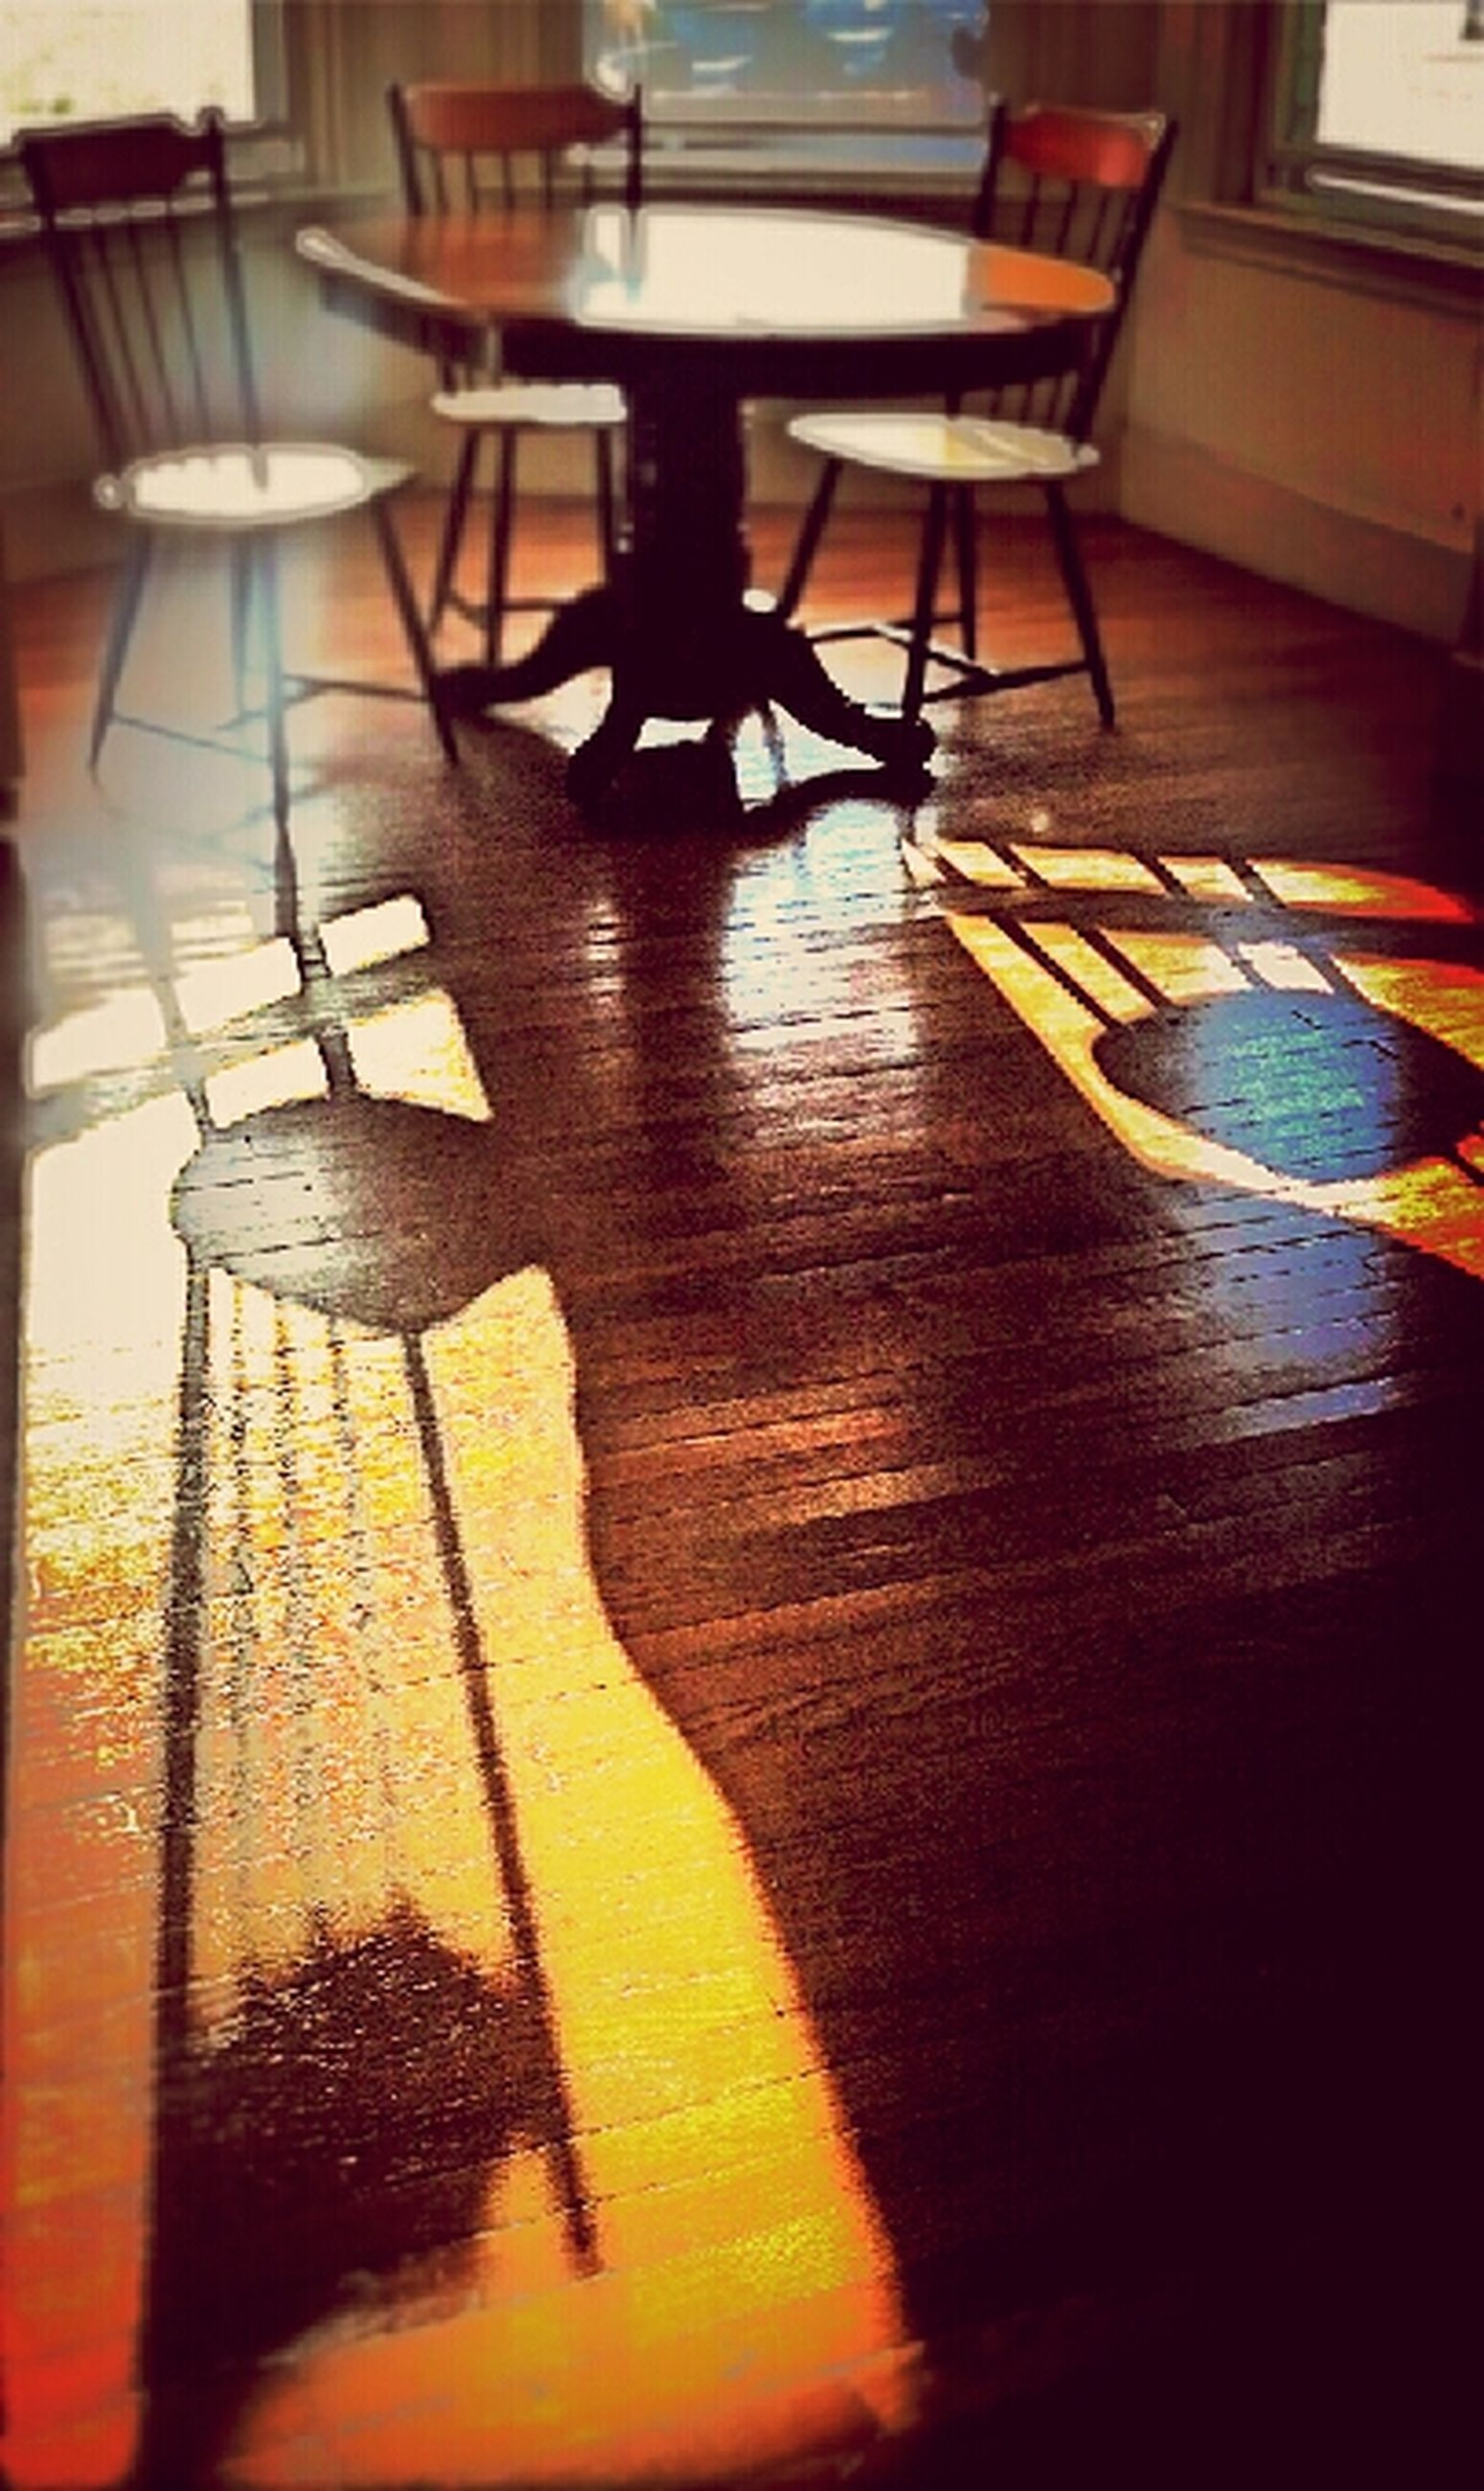 indoors, table, chair, home interior, wood - material, shadow, absence, furniture, high angle view, empty, sunlight, still life, flooring, no people, hardwood floor, electric lamp, wooden, floor, tiled floor, room